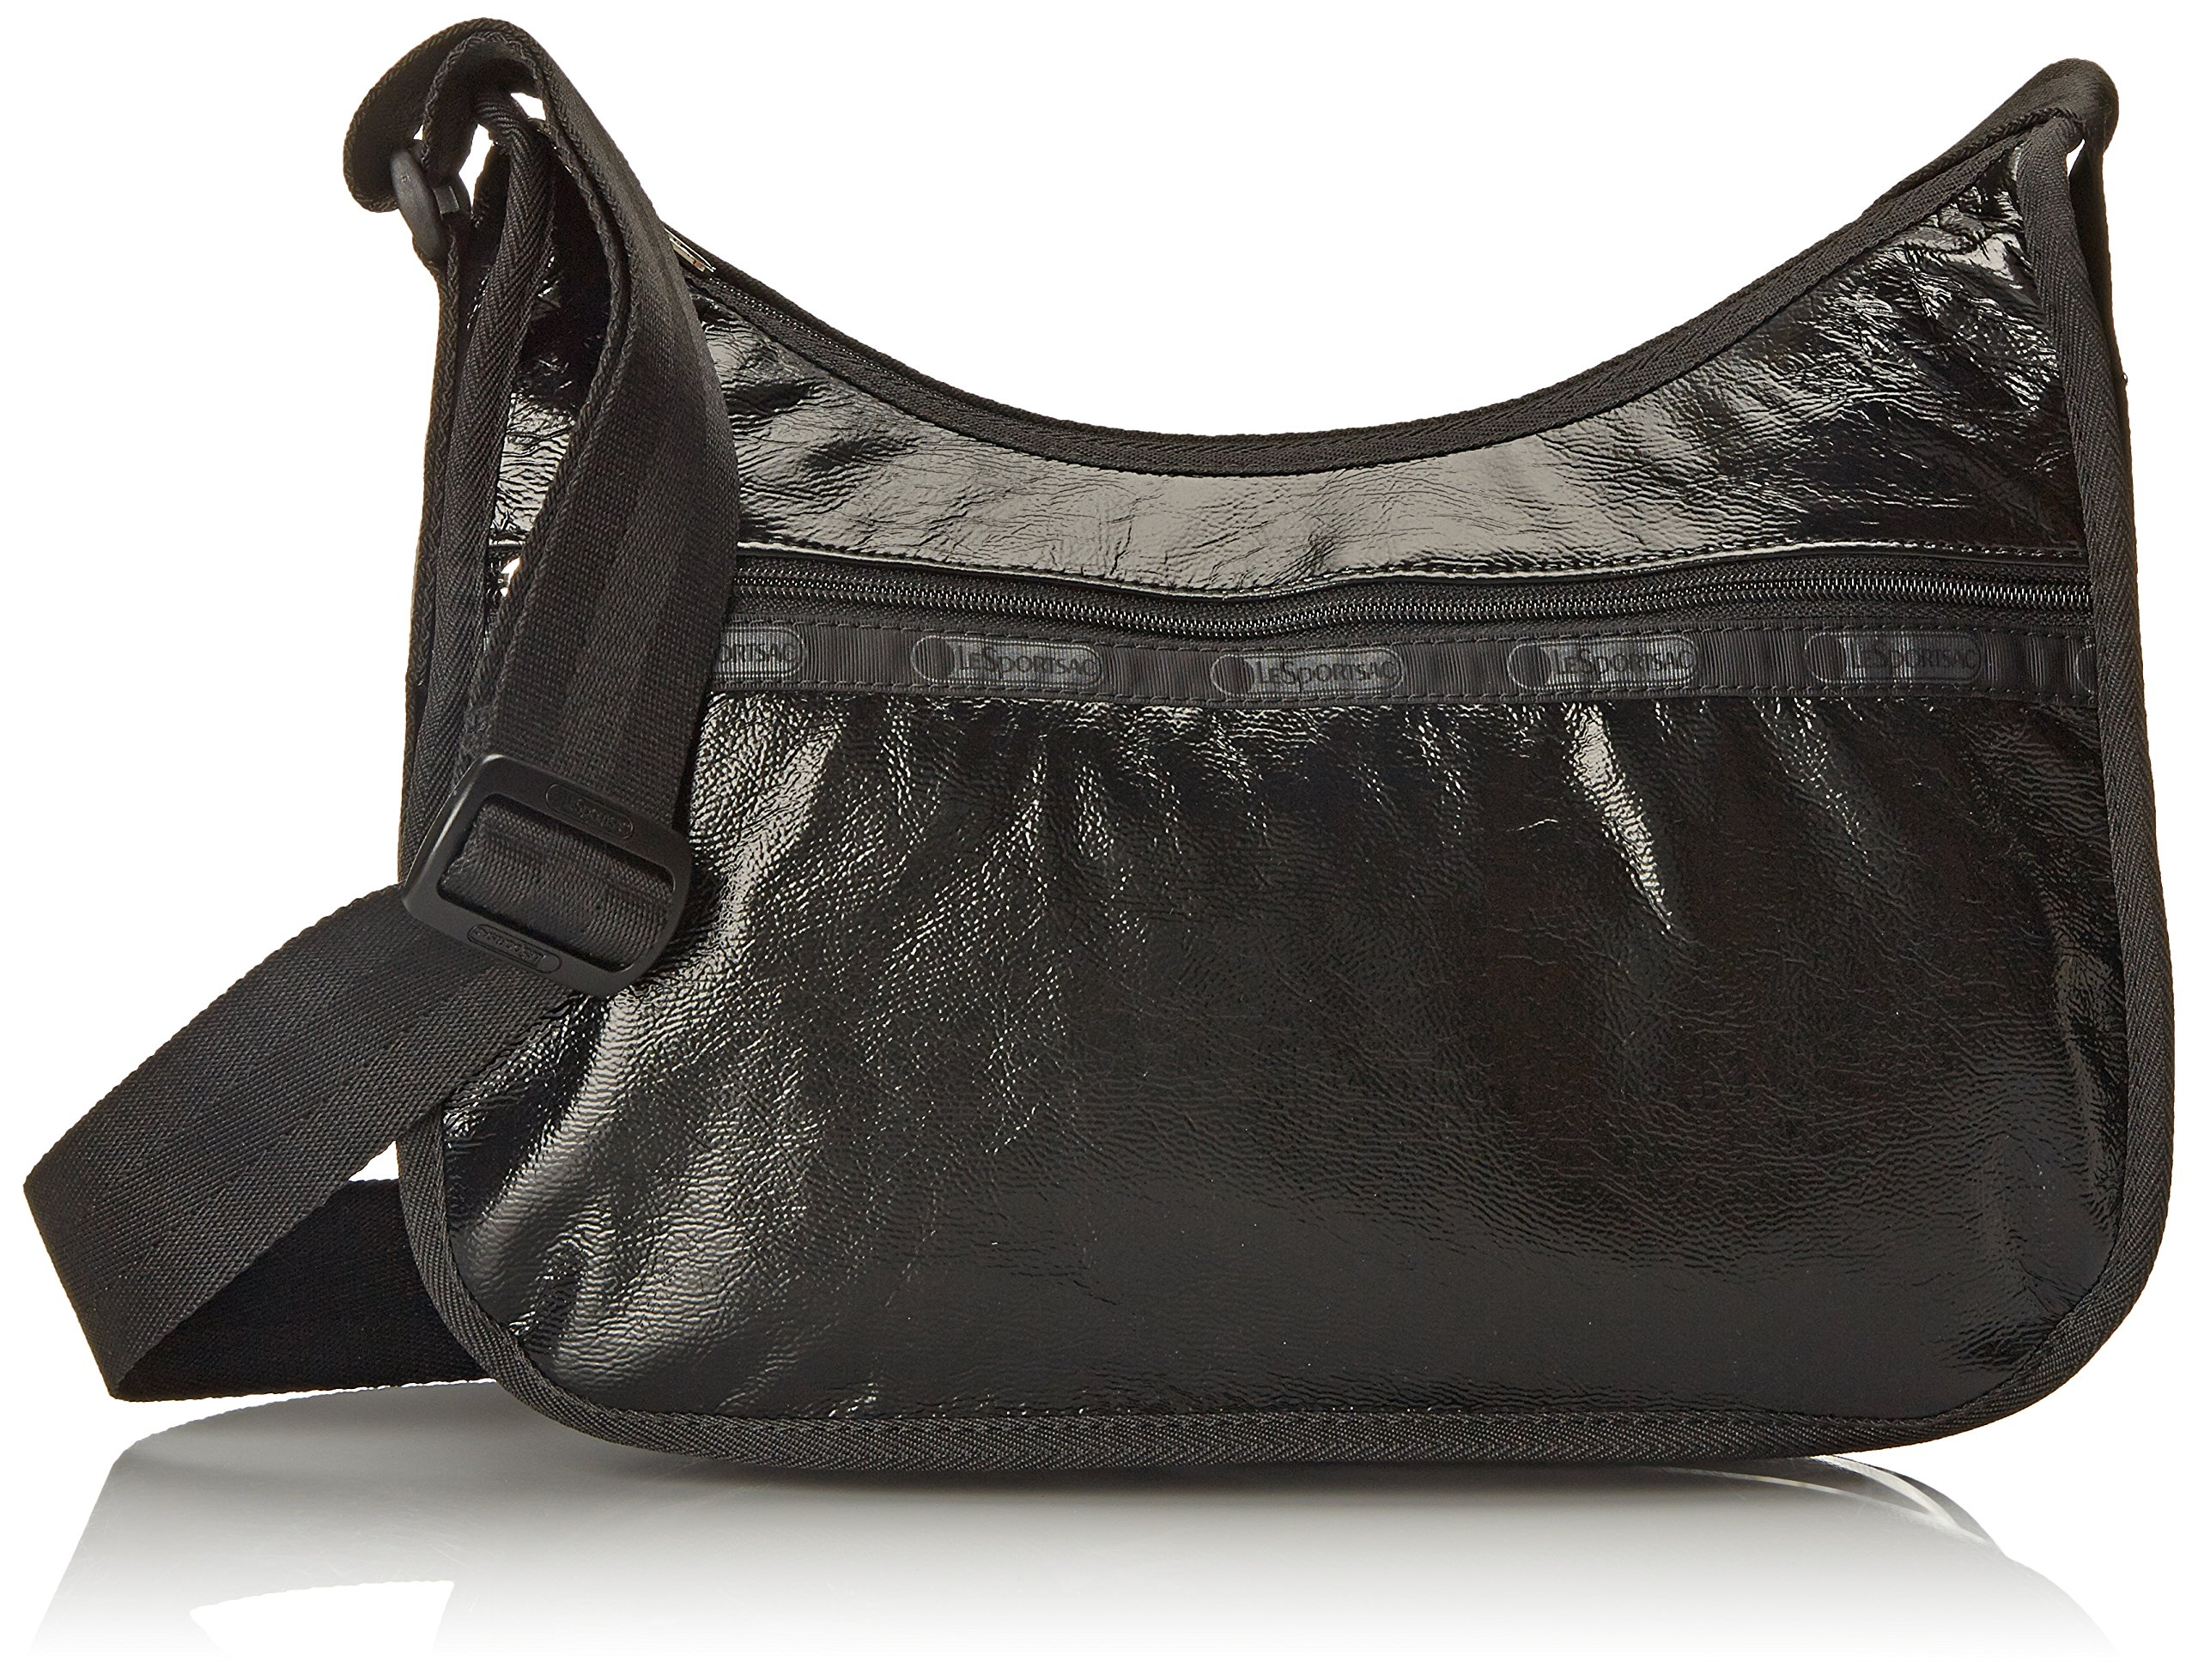 LeSportsac Classic Hobo Hand Shoulder Bag, Black Crinkle Patent, One Size